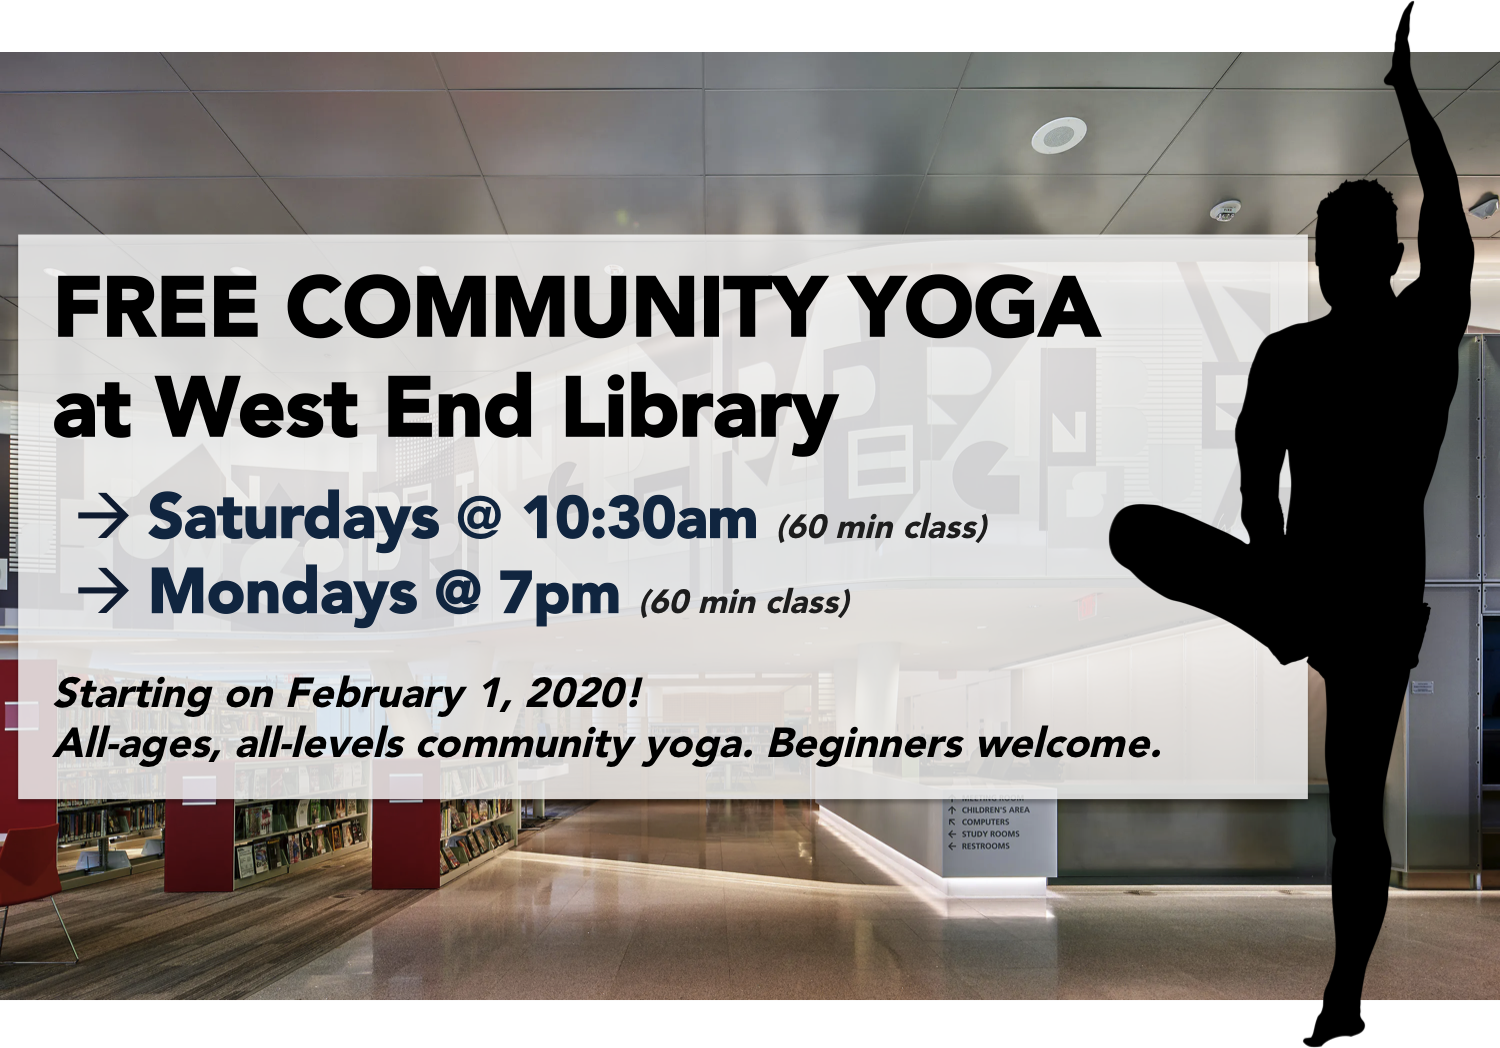 Free Community Yoga @ West End Library (DC)